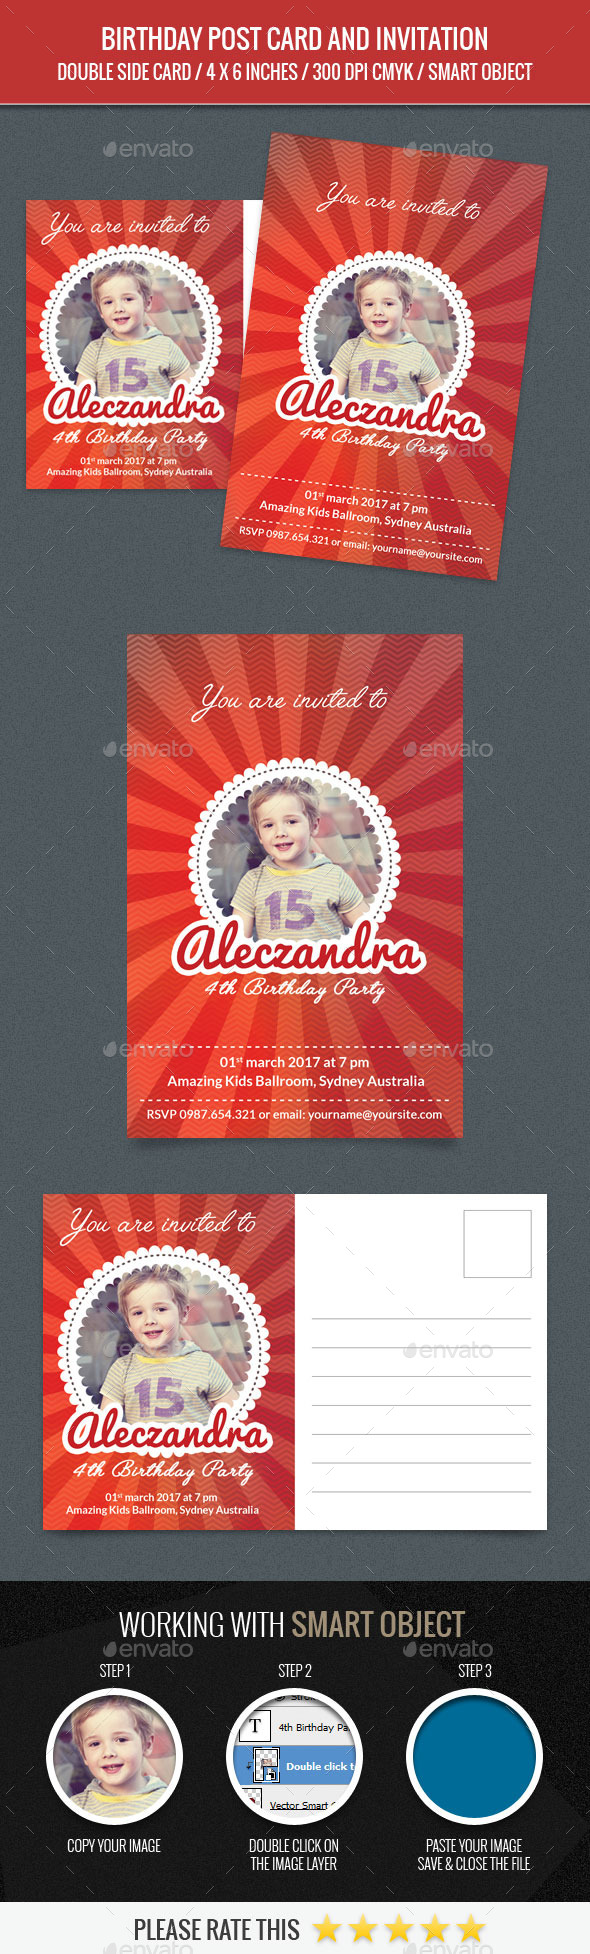 Birthday Post Card Template - Birthday Greeting Cards